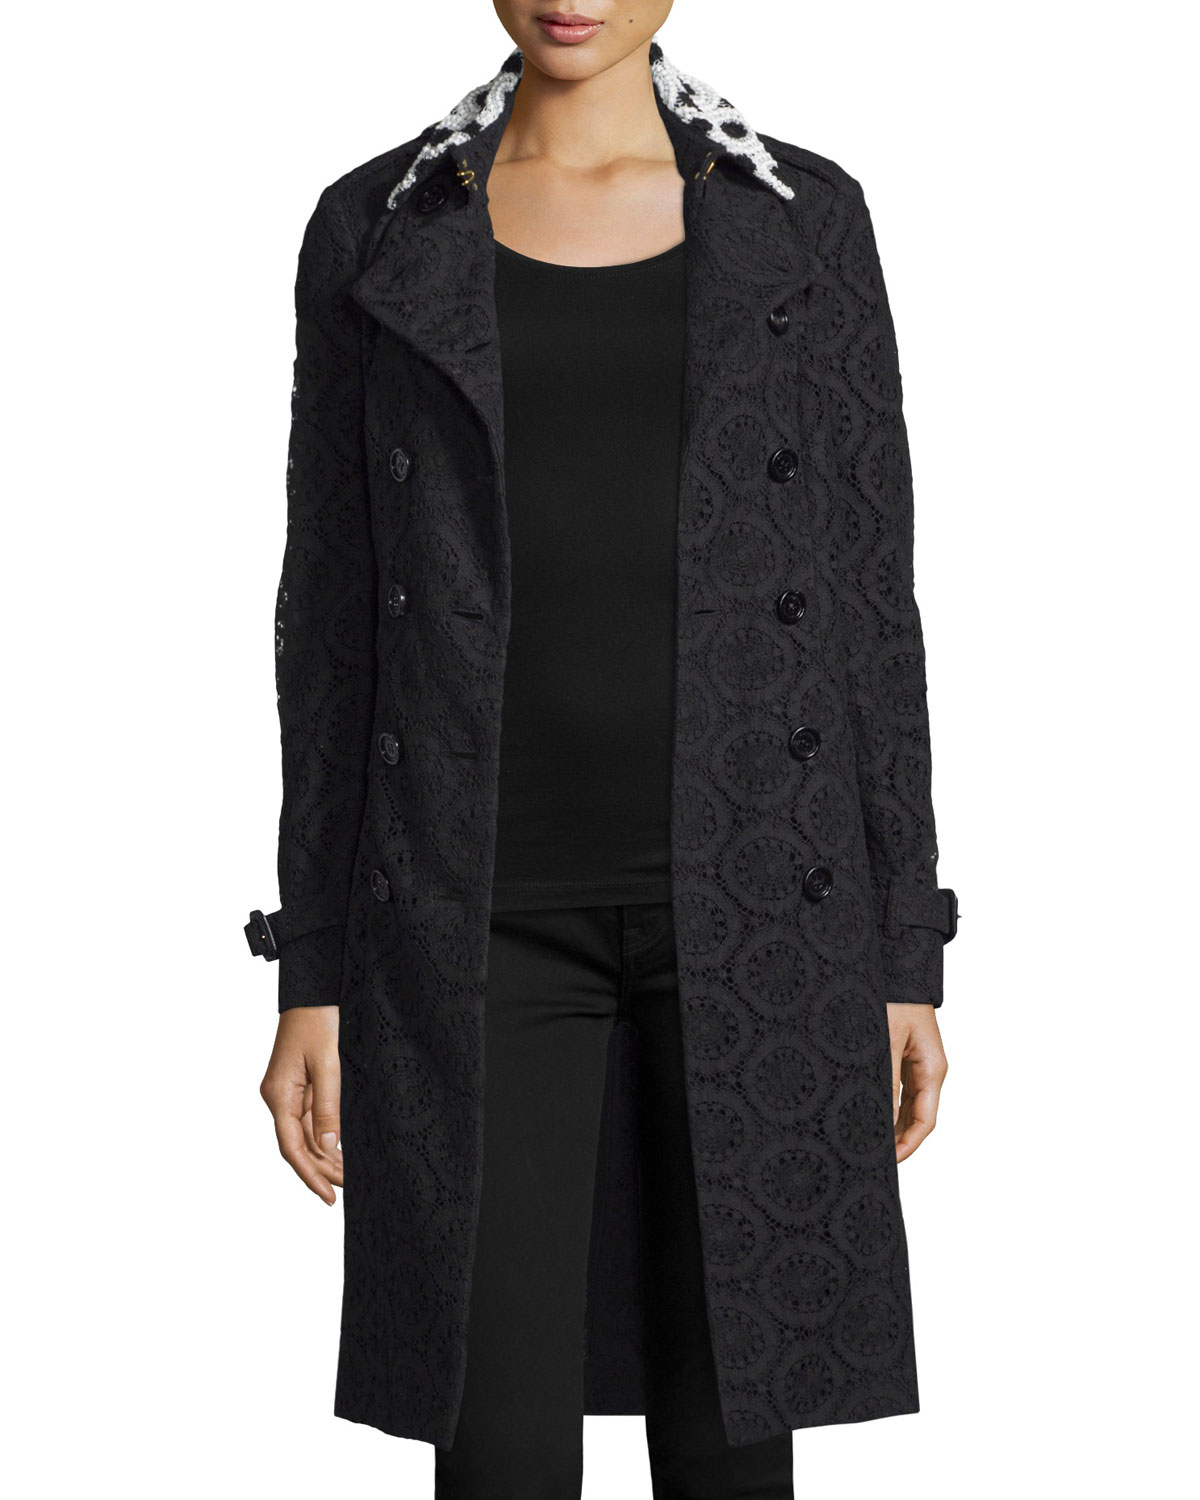 Macrame Lace Trenchcoat with Contrast Collar, Black